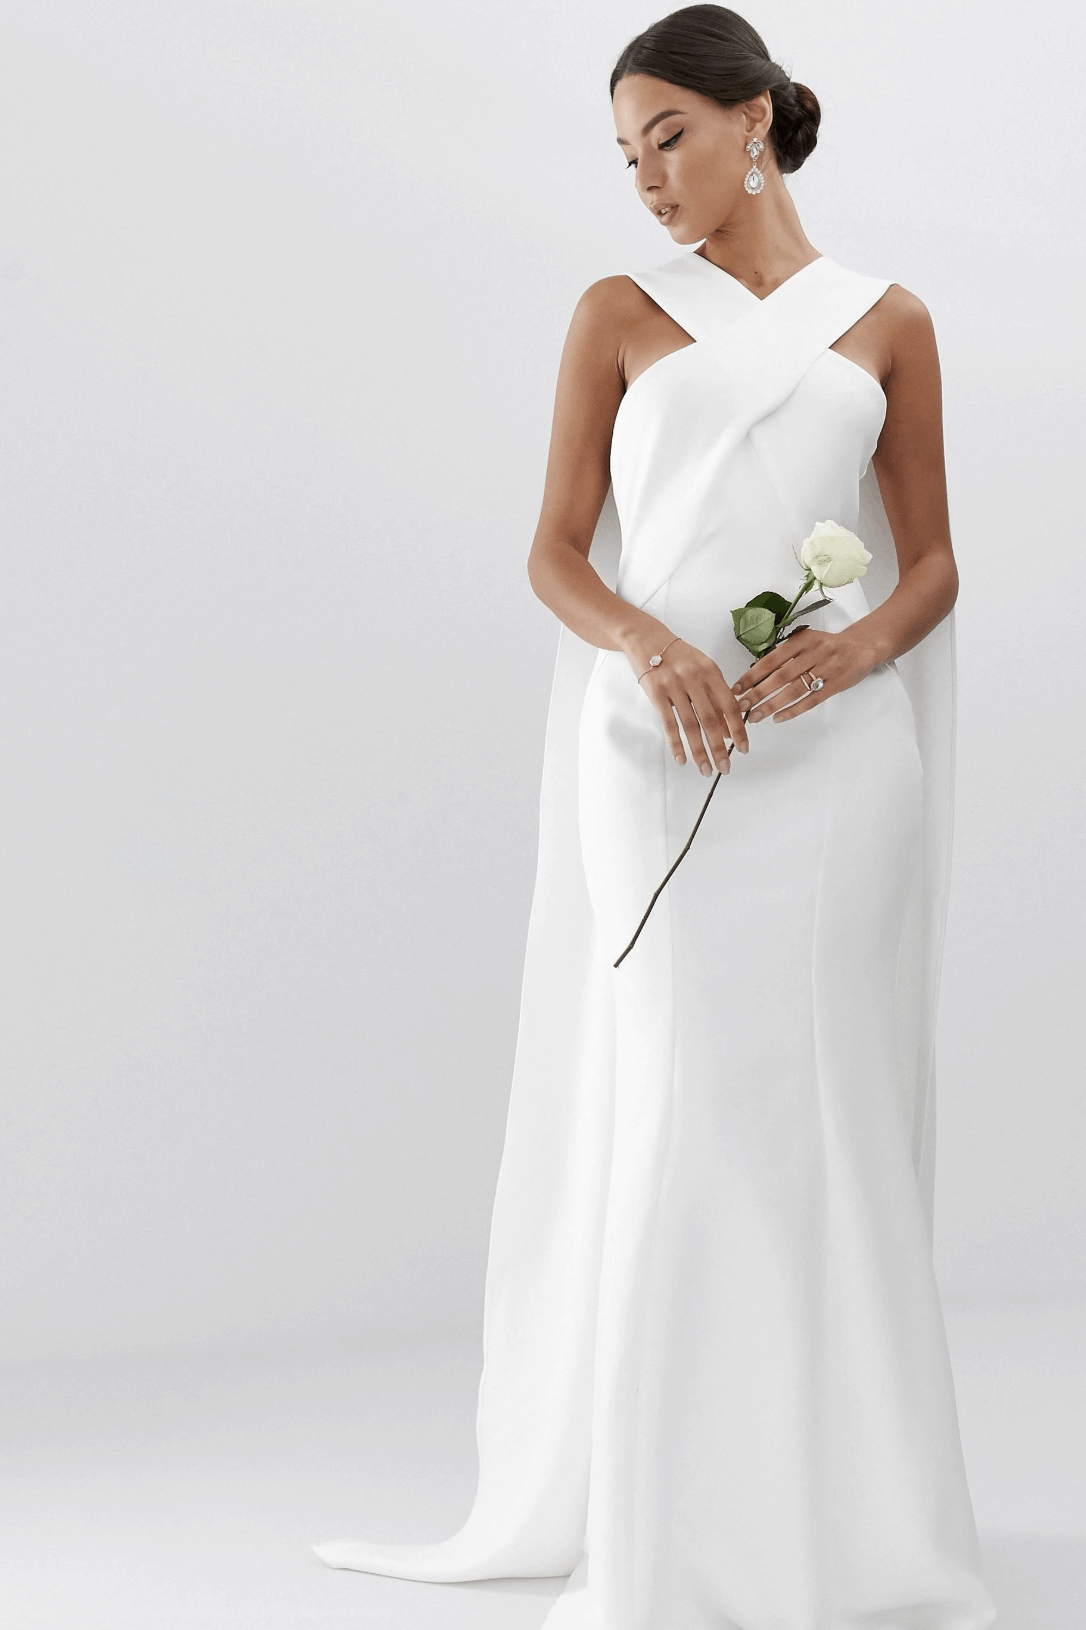 79c5c597d Cheap Affordable Bridal Gowns and Wedding Dresses ASOS Edition Cross Front  Cape Wedding Dress